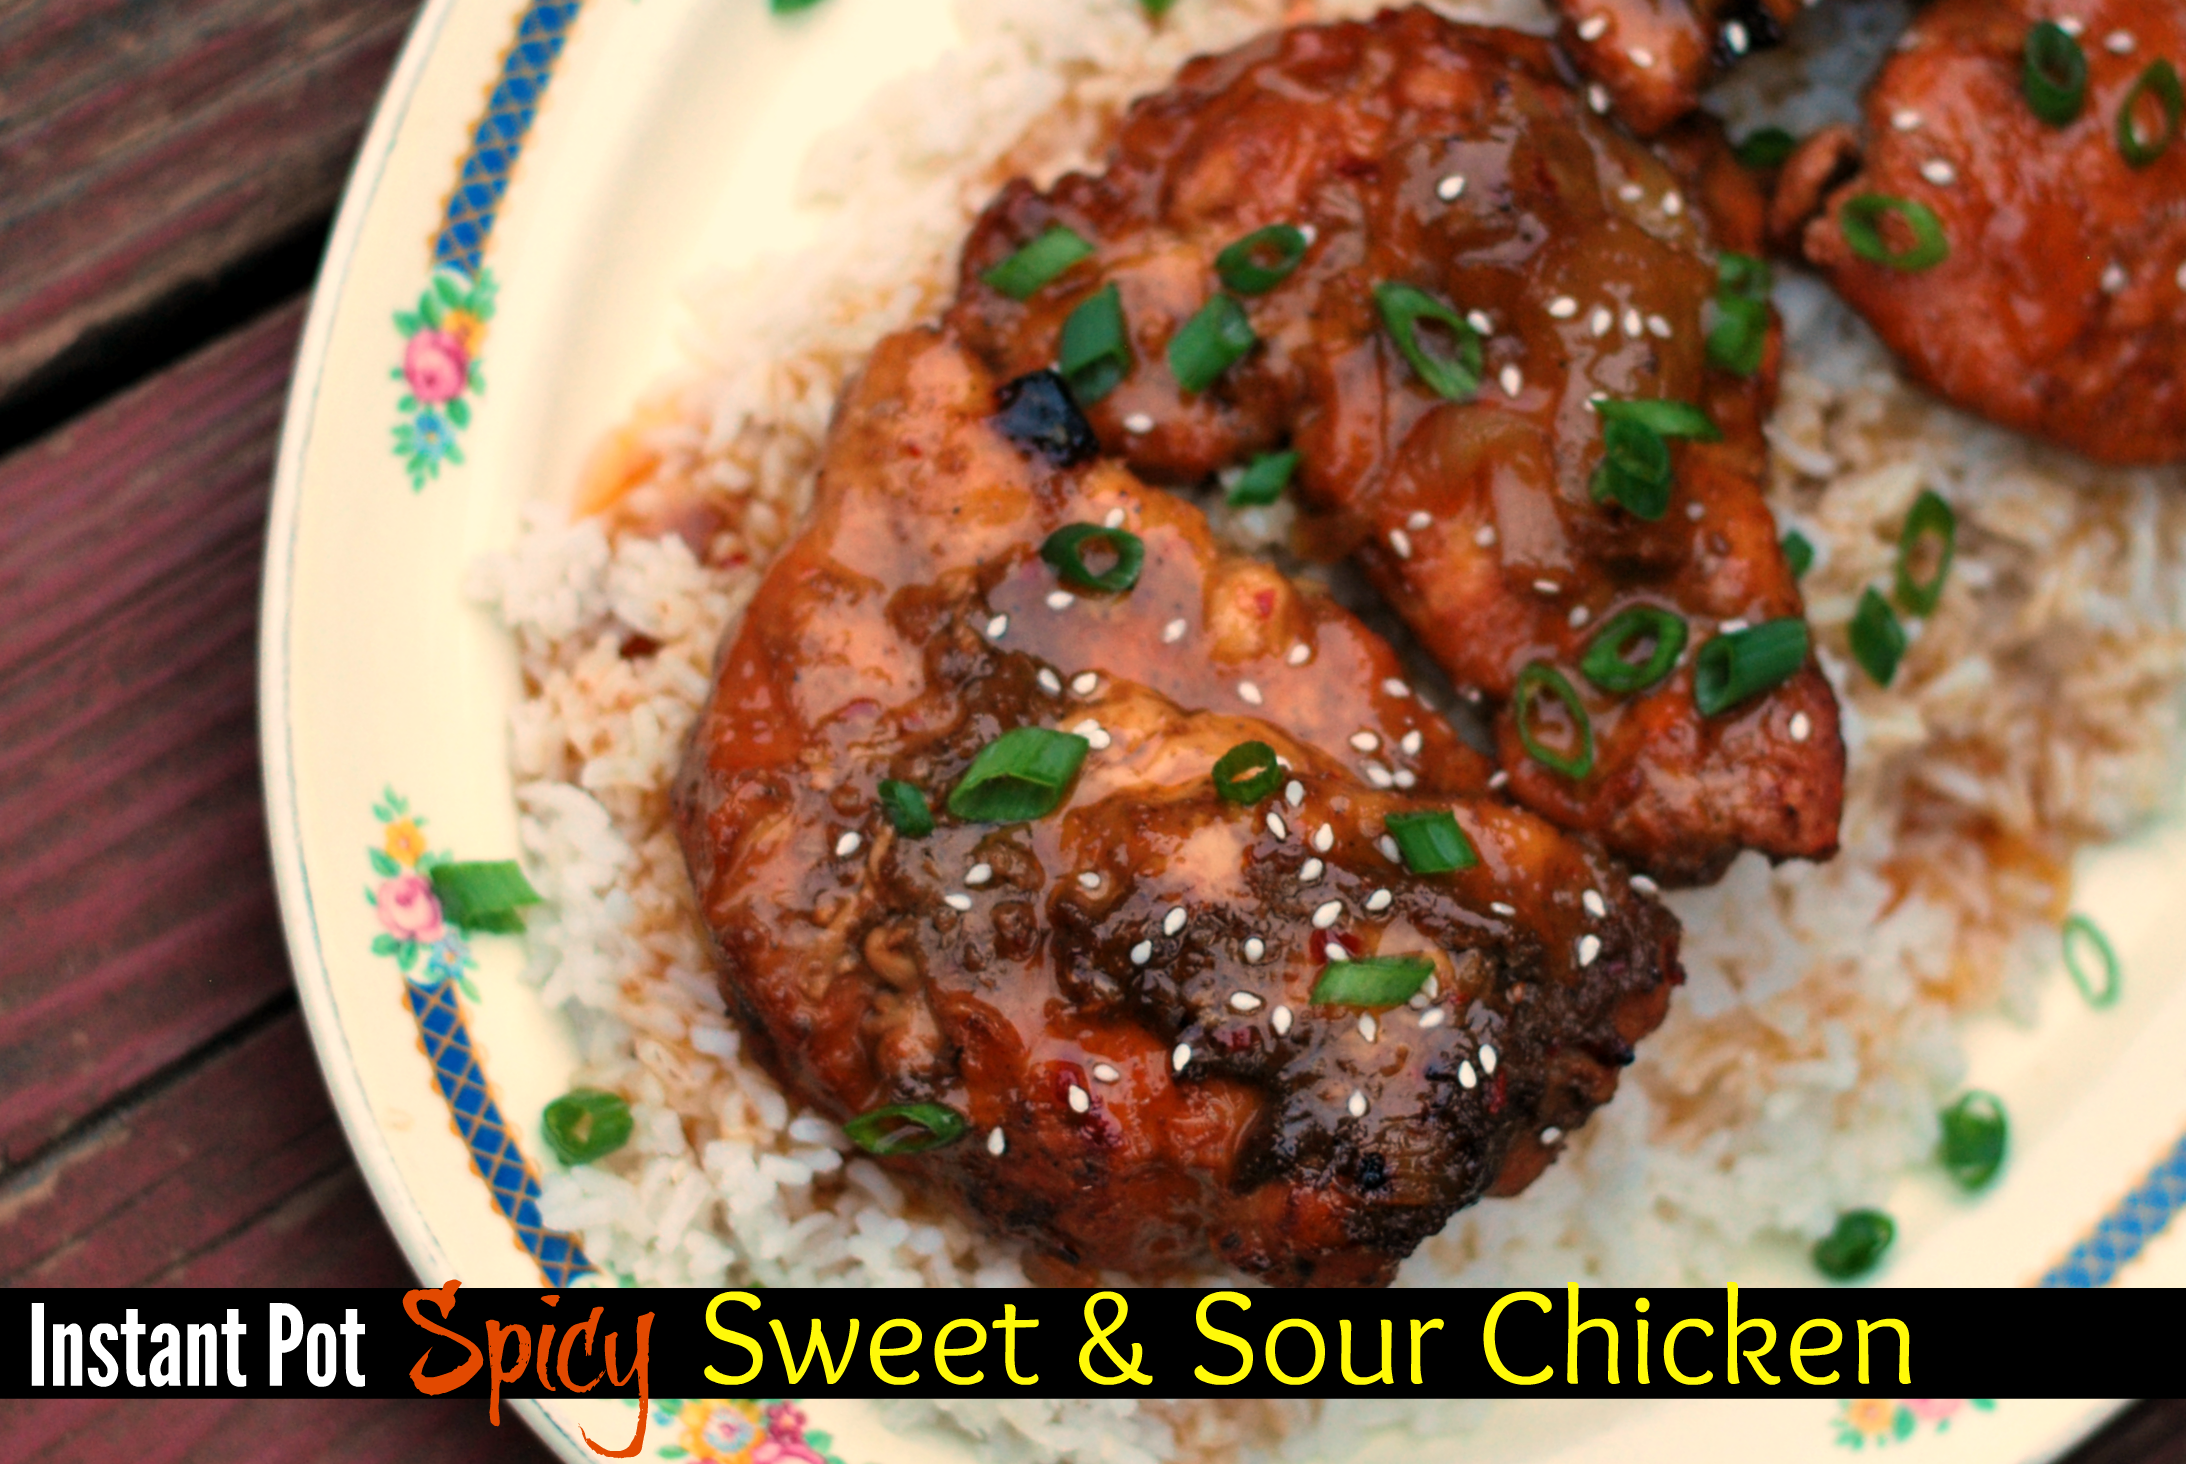 Instant Pot Spicy Sweet & Sour Chicken